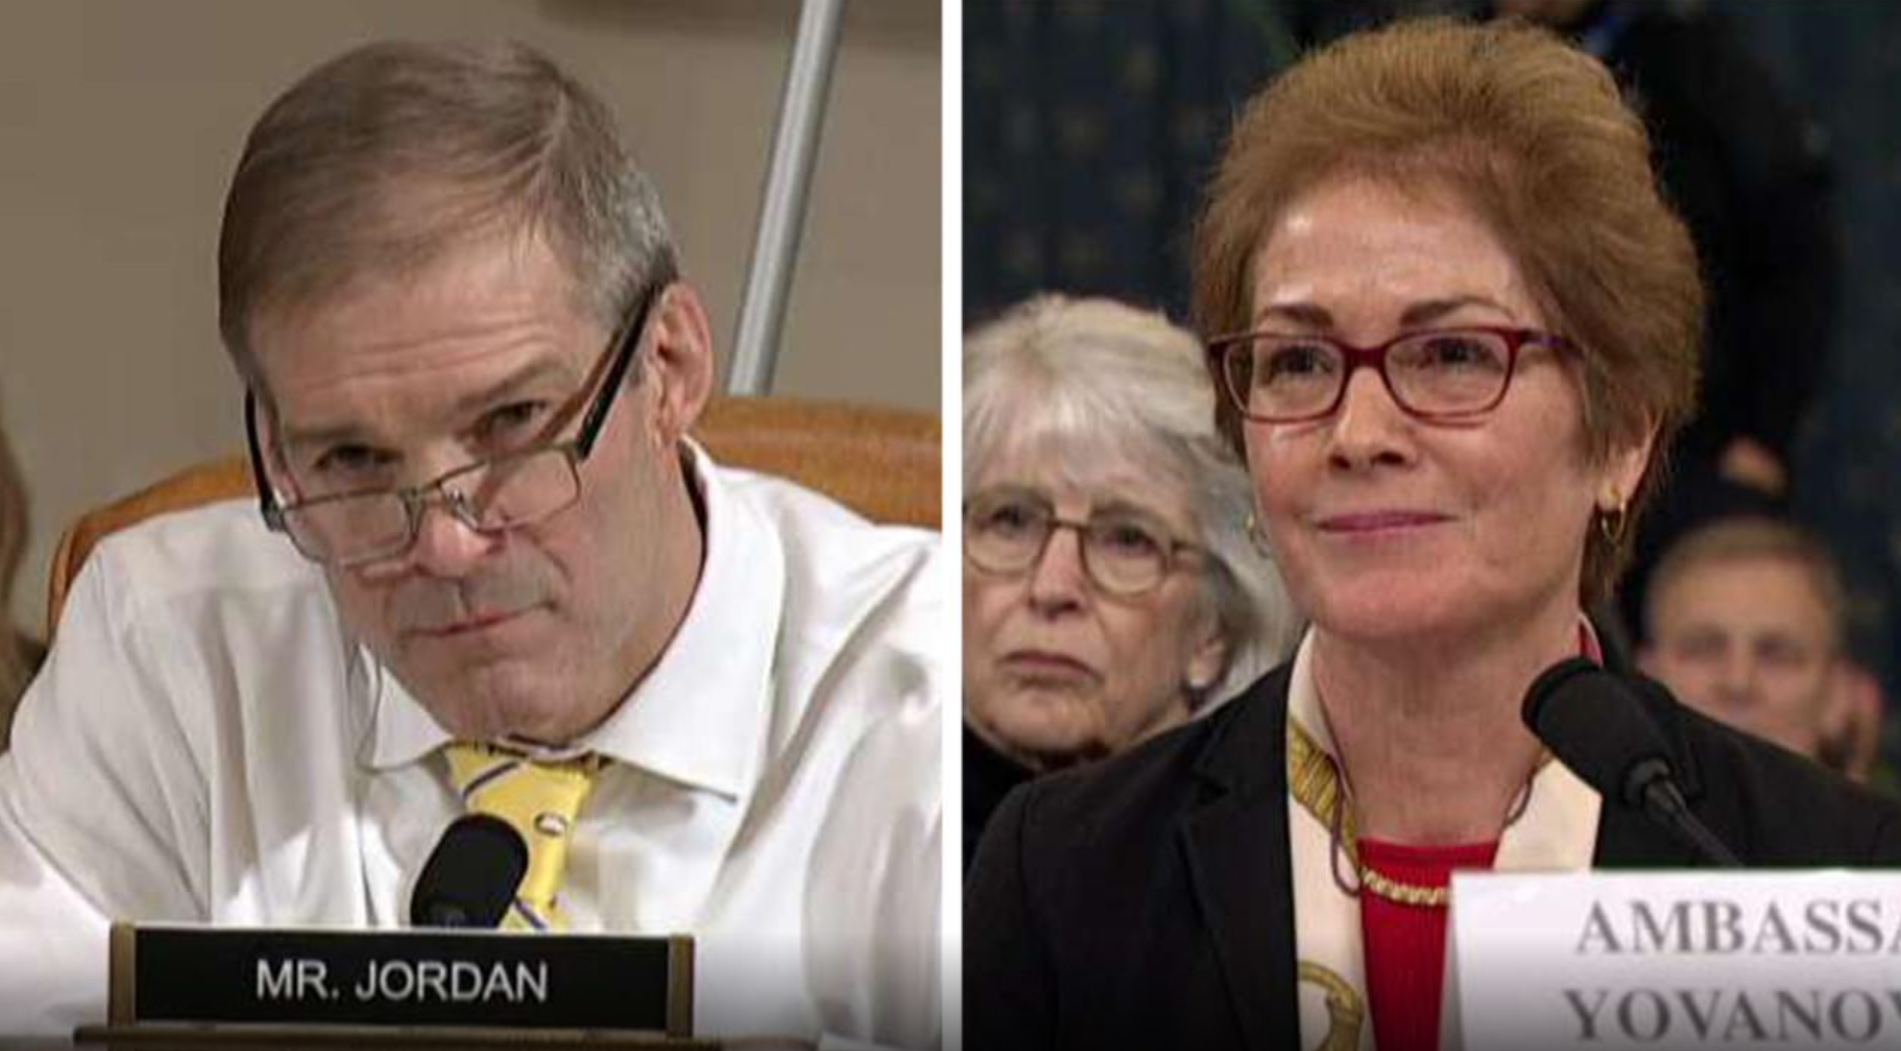 Westlake Legal Group Screen-Shot-2019-11-15-at-5.52.22-PM Jim Jordan jabs Adam Schiff: 'Our indulgence wore out with you a long time ago' Joshua Nelson fox-news/politics/trump-impeachment-inquiry fox-news/media/fox-news-flash fox news fnc/media fnc article 01cd5d5d-36c0-5f3f-b802-9569b1d835f1